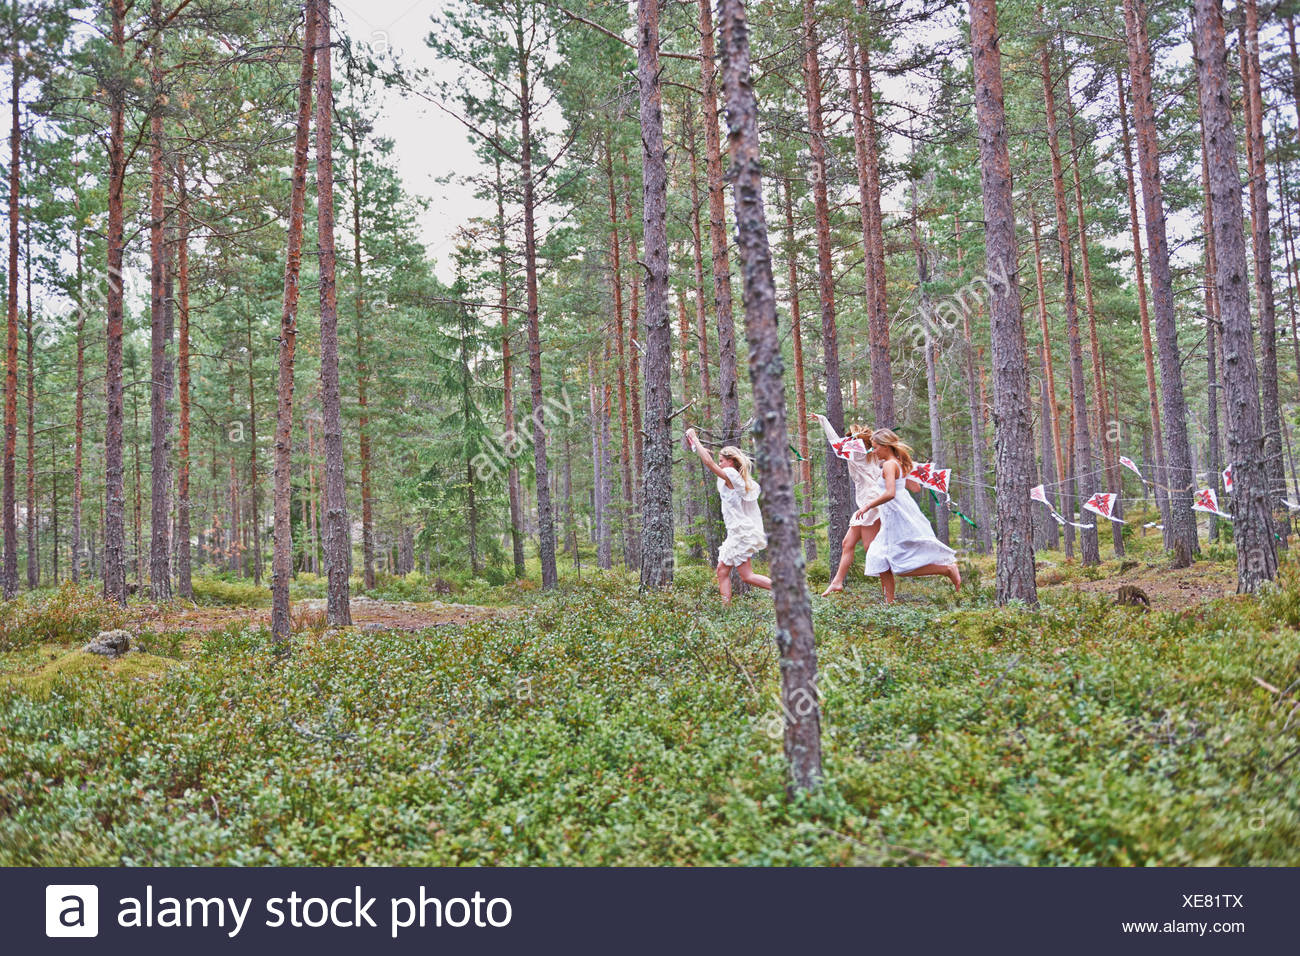 Teenage girls running in forest with kites Stock Photo